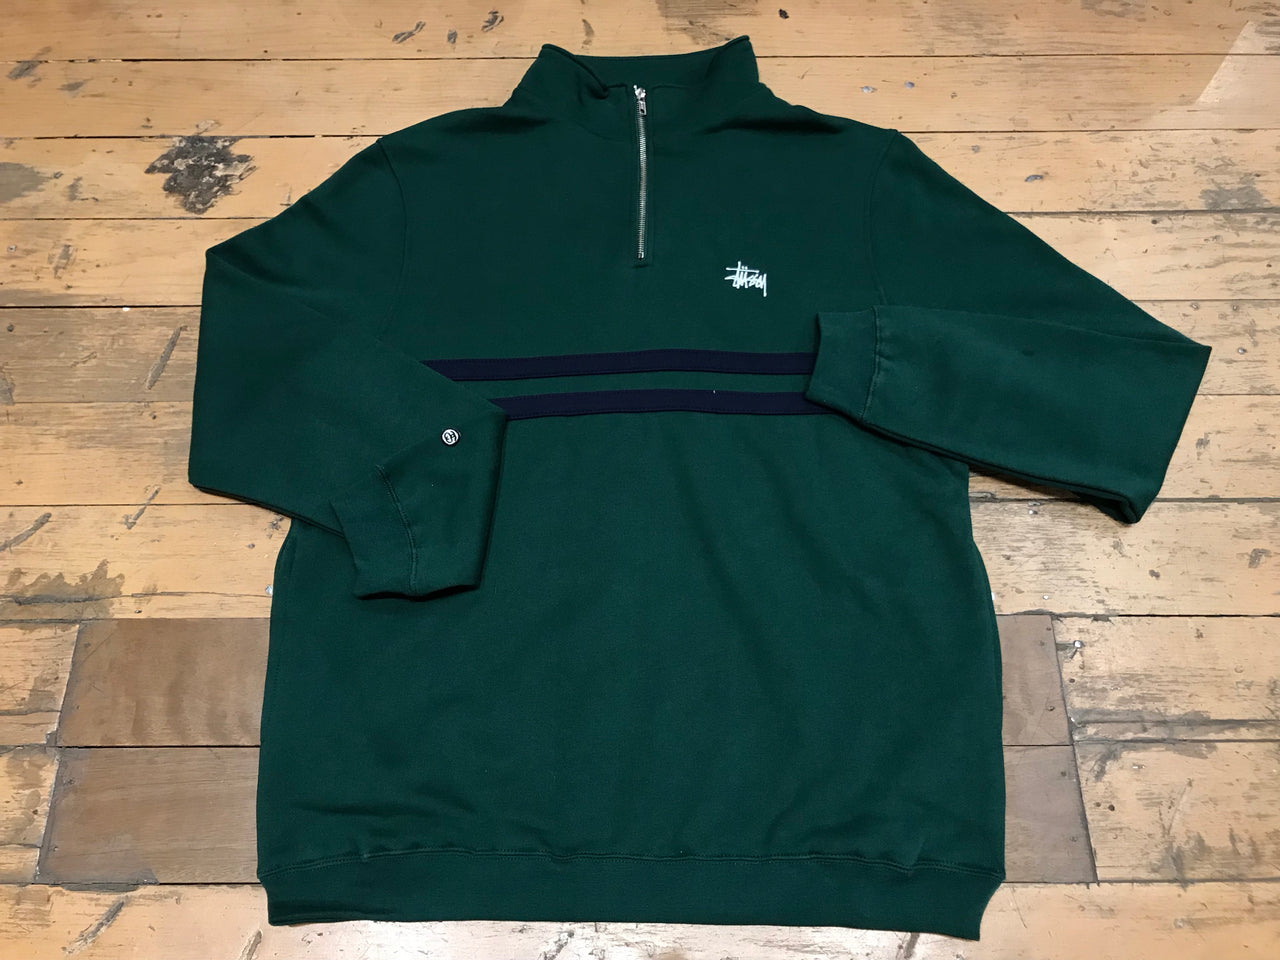 Zinner Half Zip Fleece - Bottle